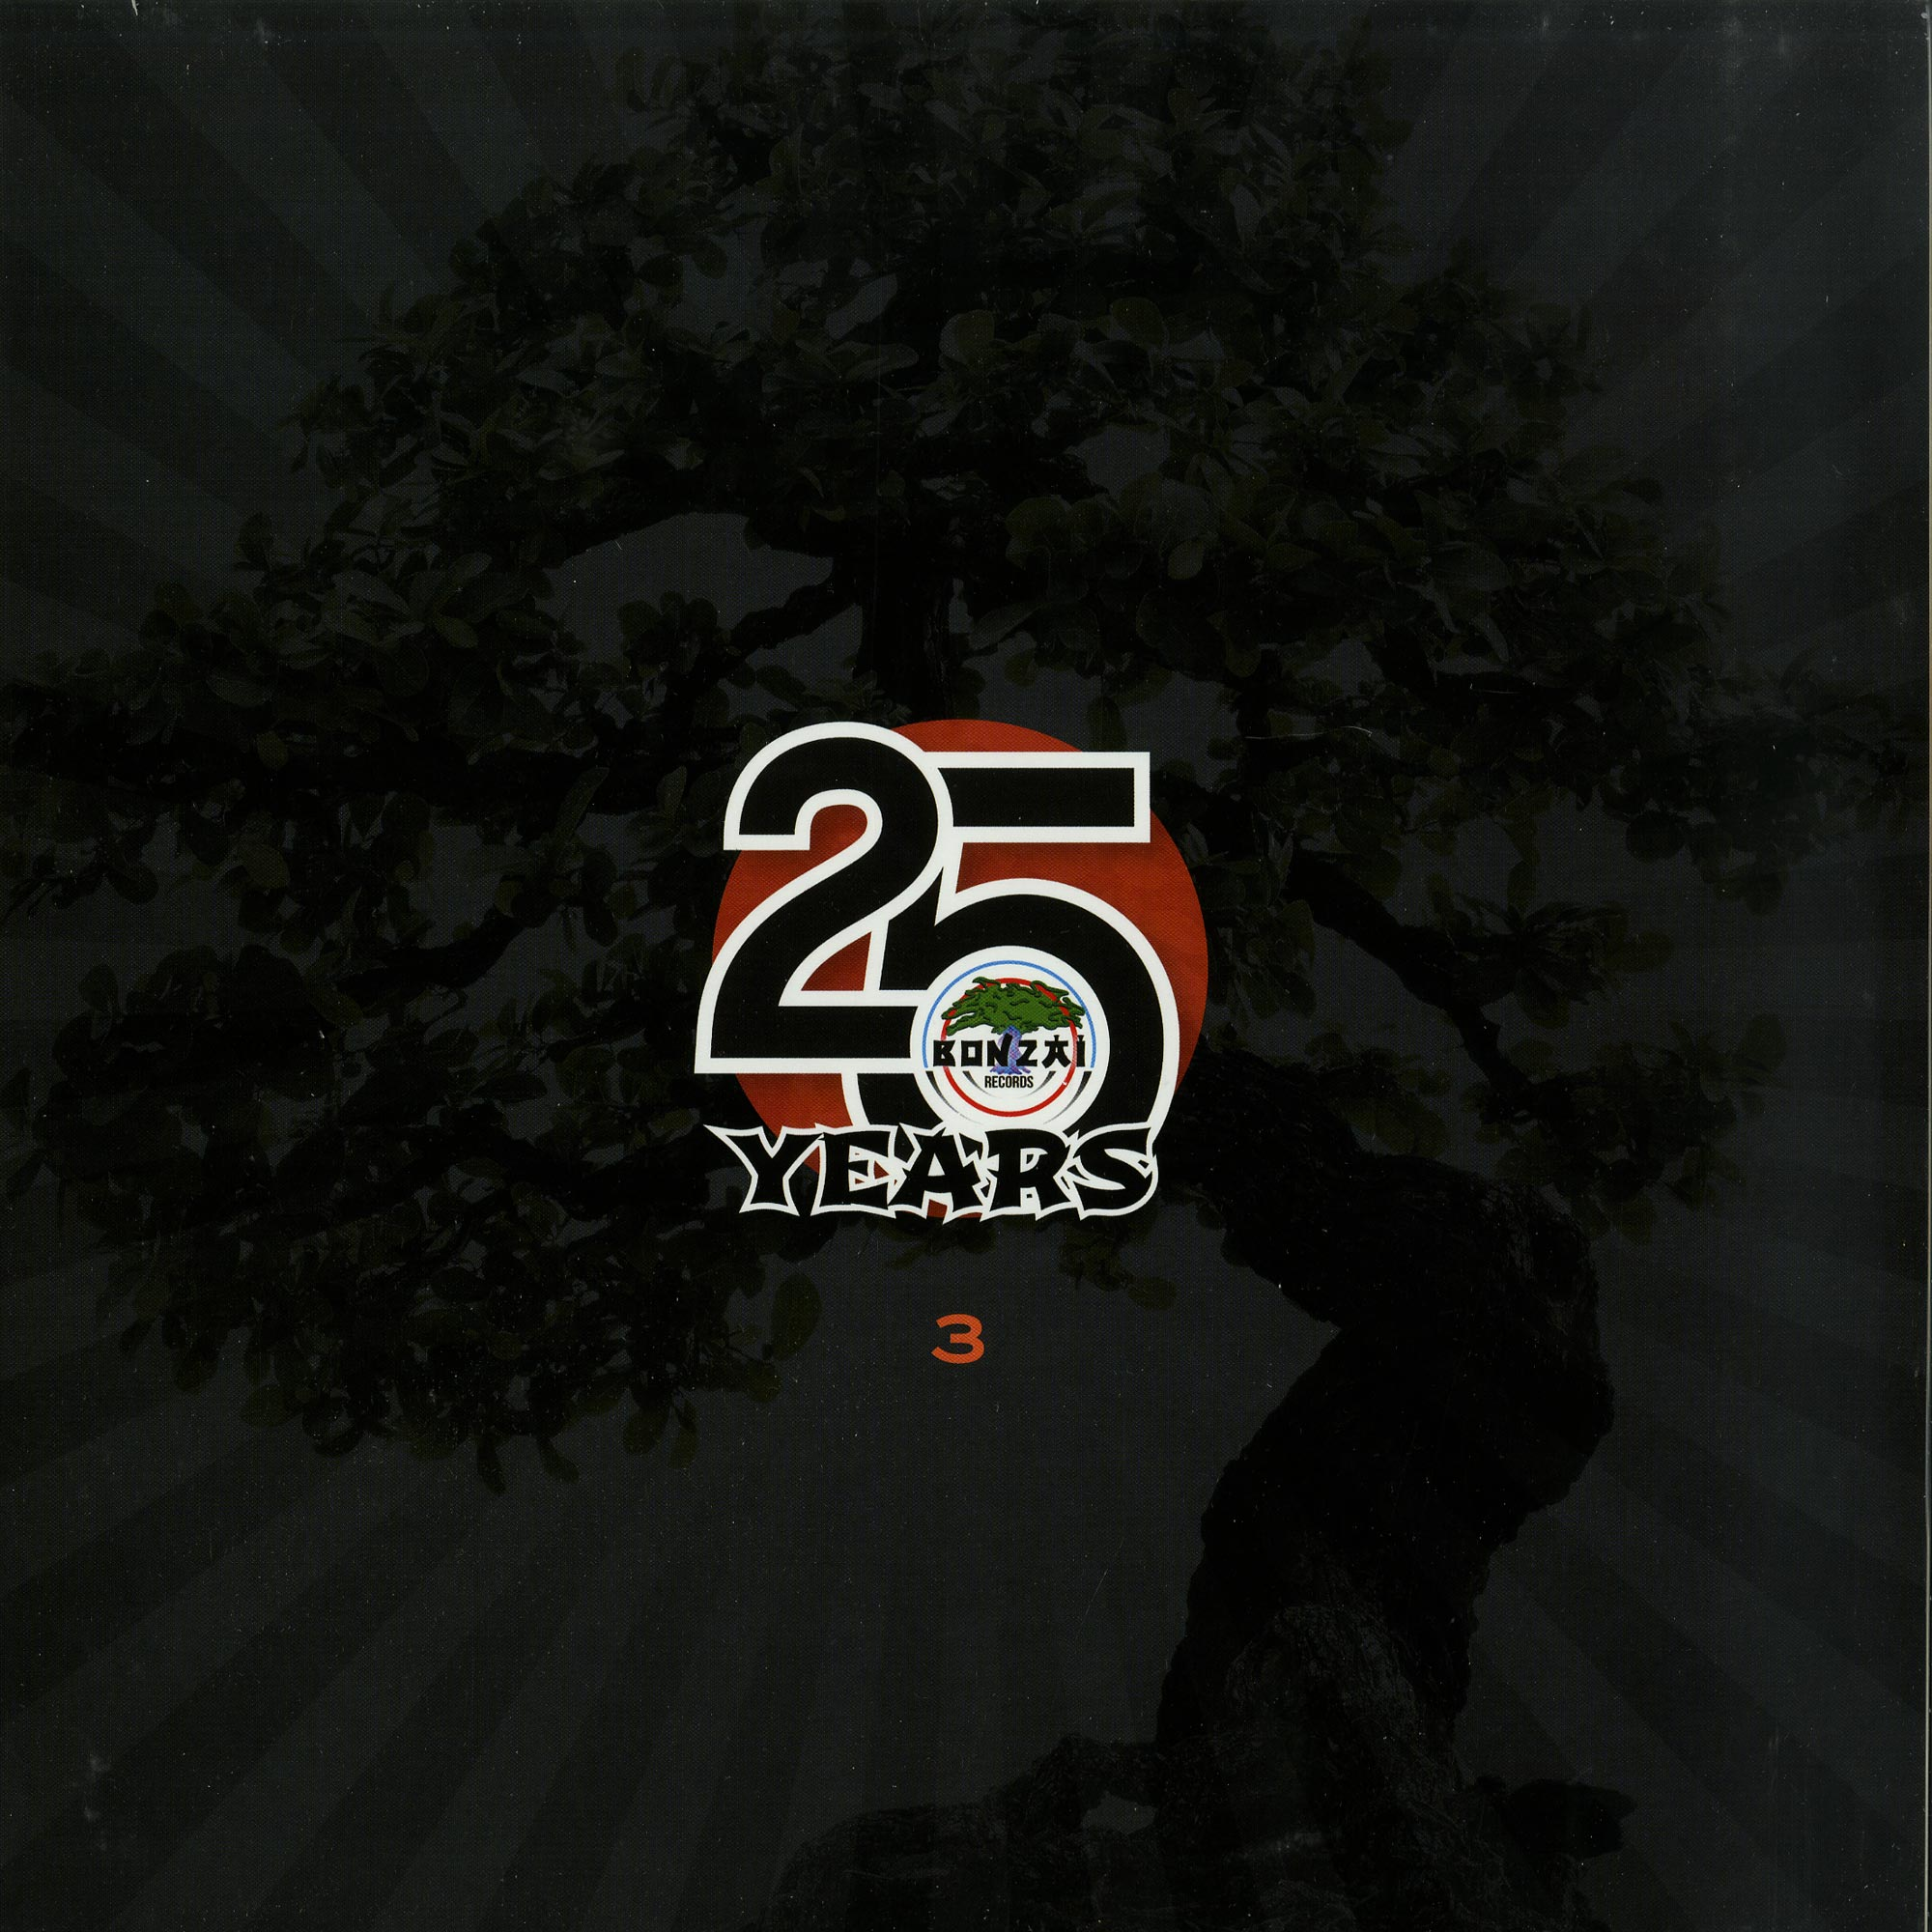 The Green Martian / Honey C / Groove Park - PT 3 - 25 YEARS OF BONZAI